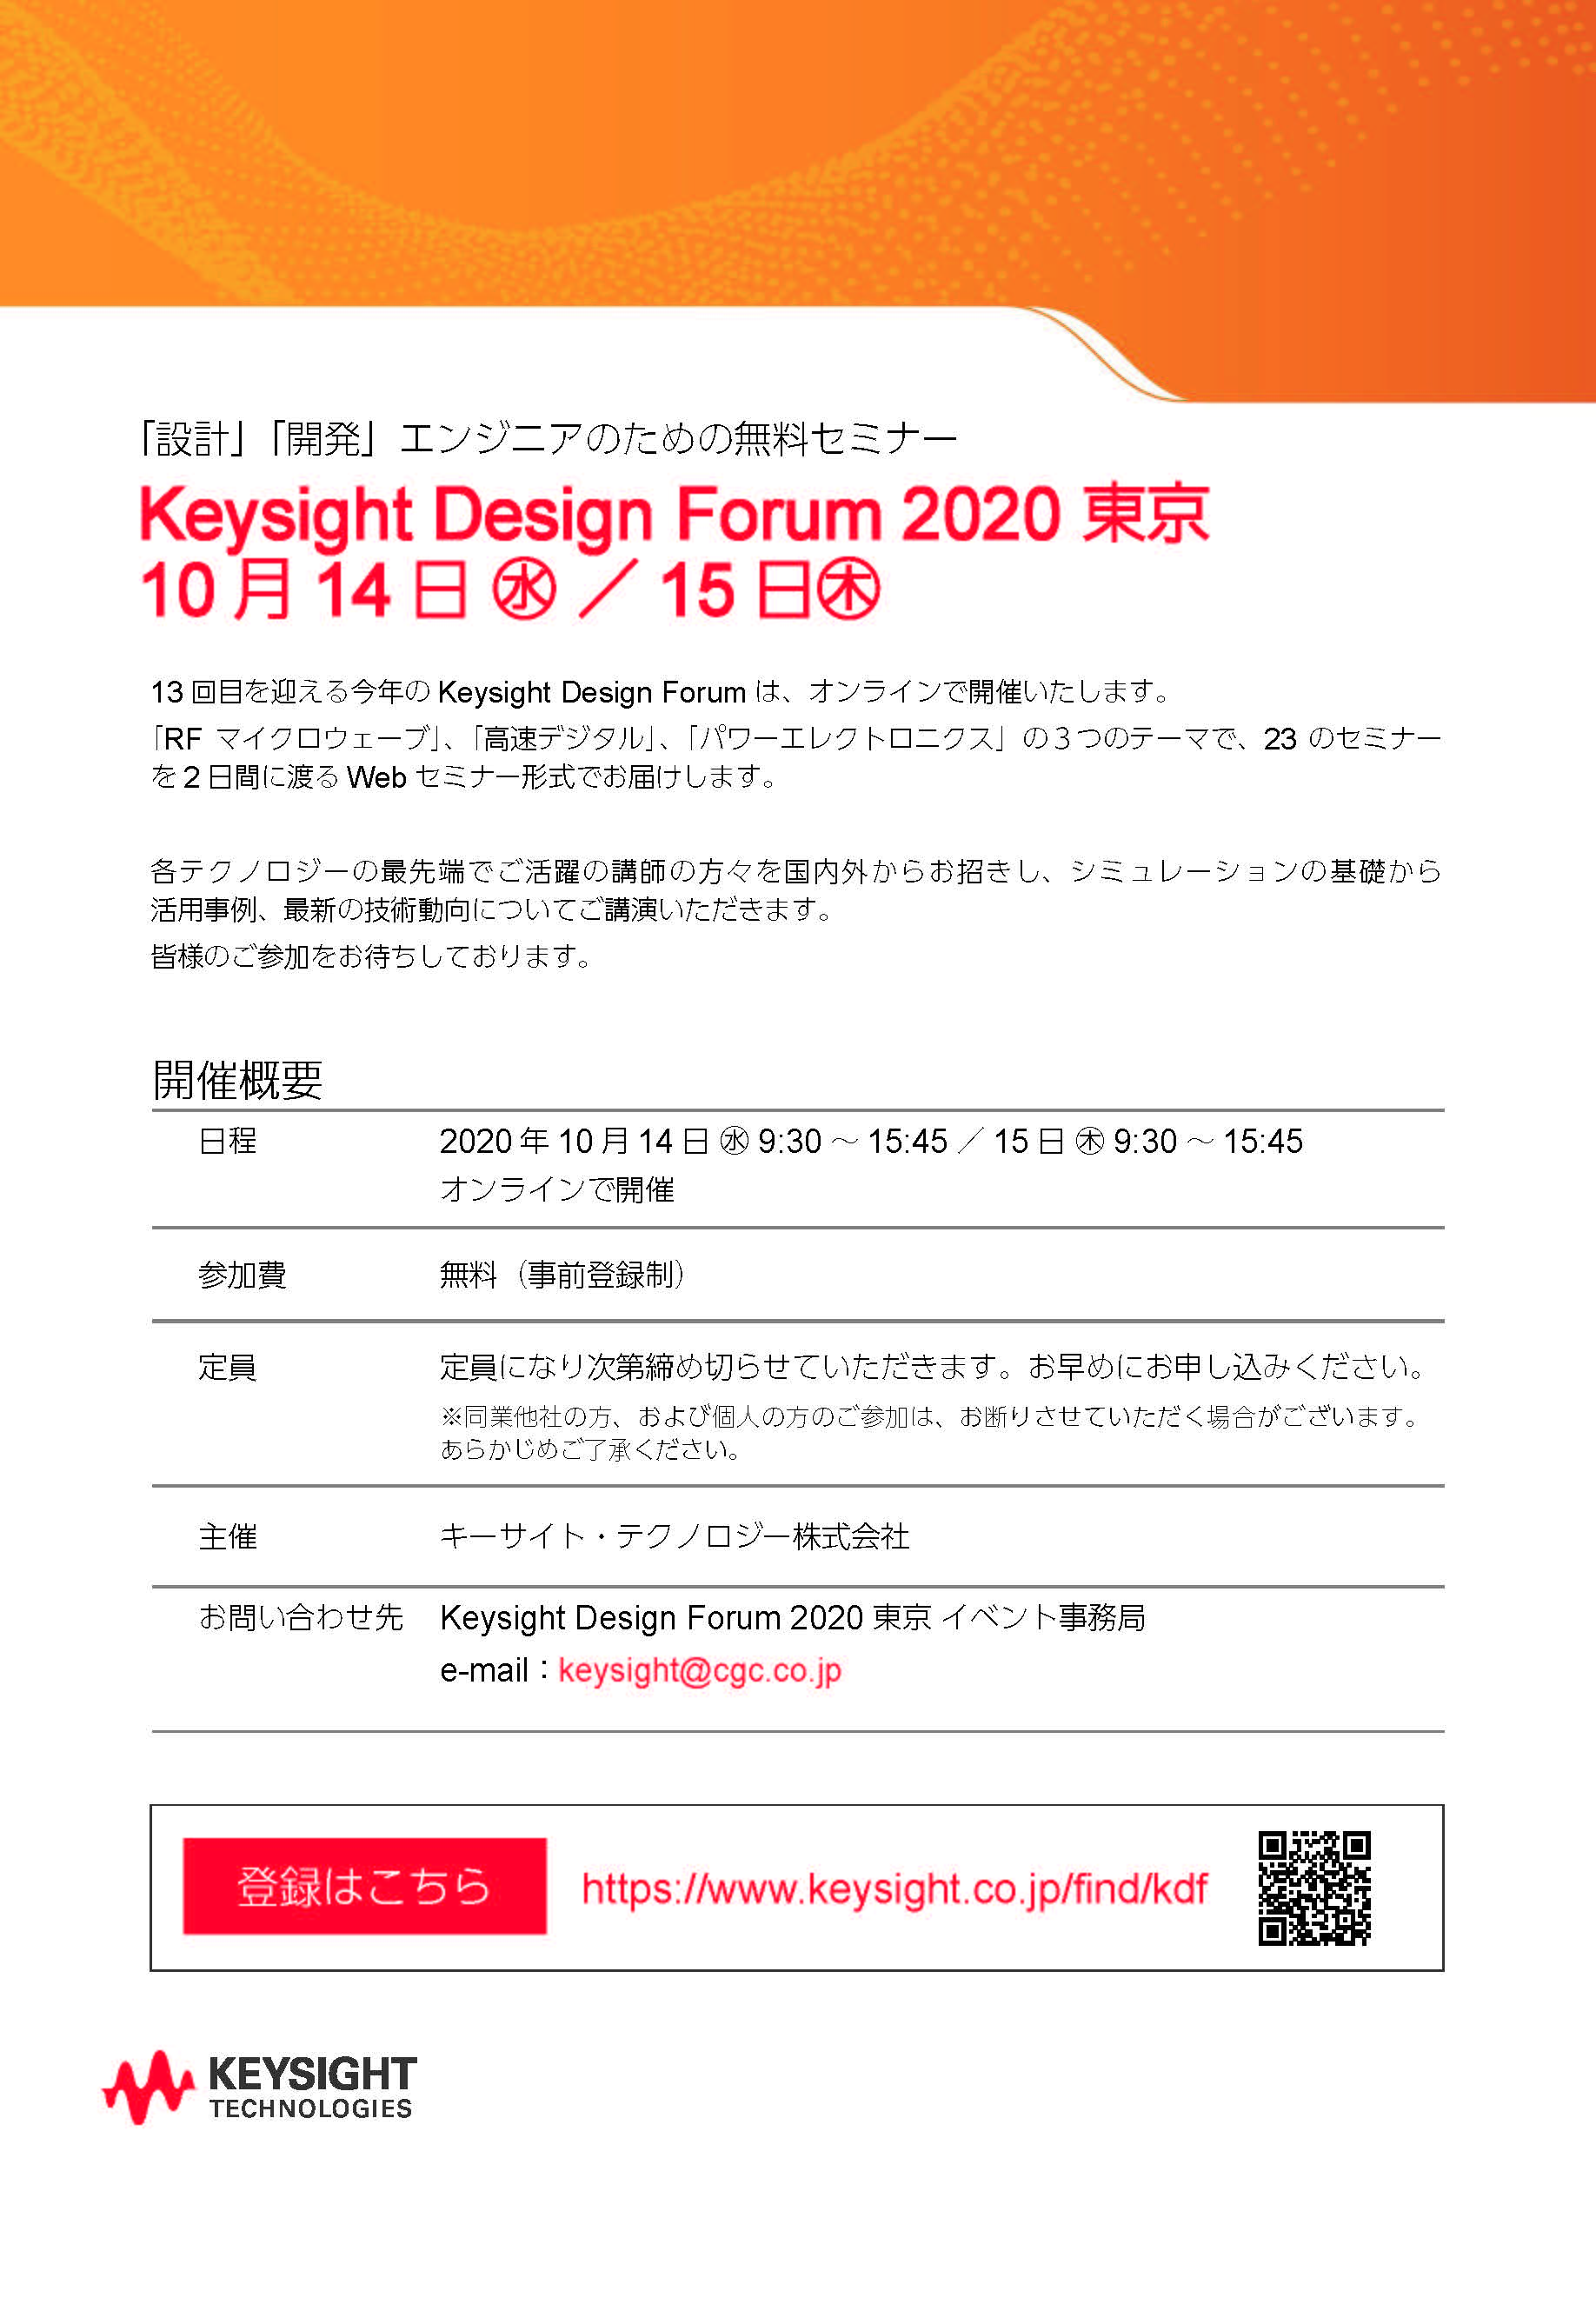 Keysight Design Forum2020